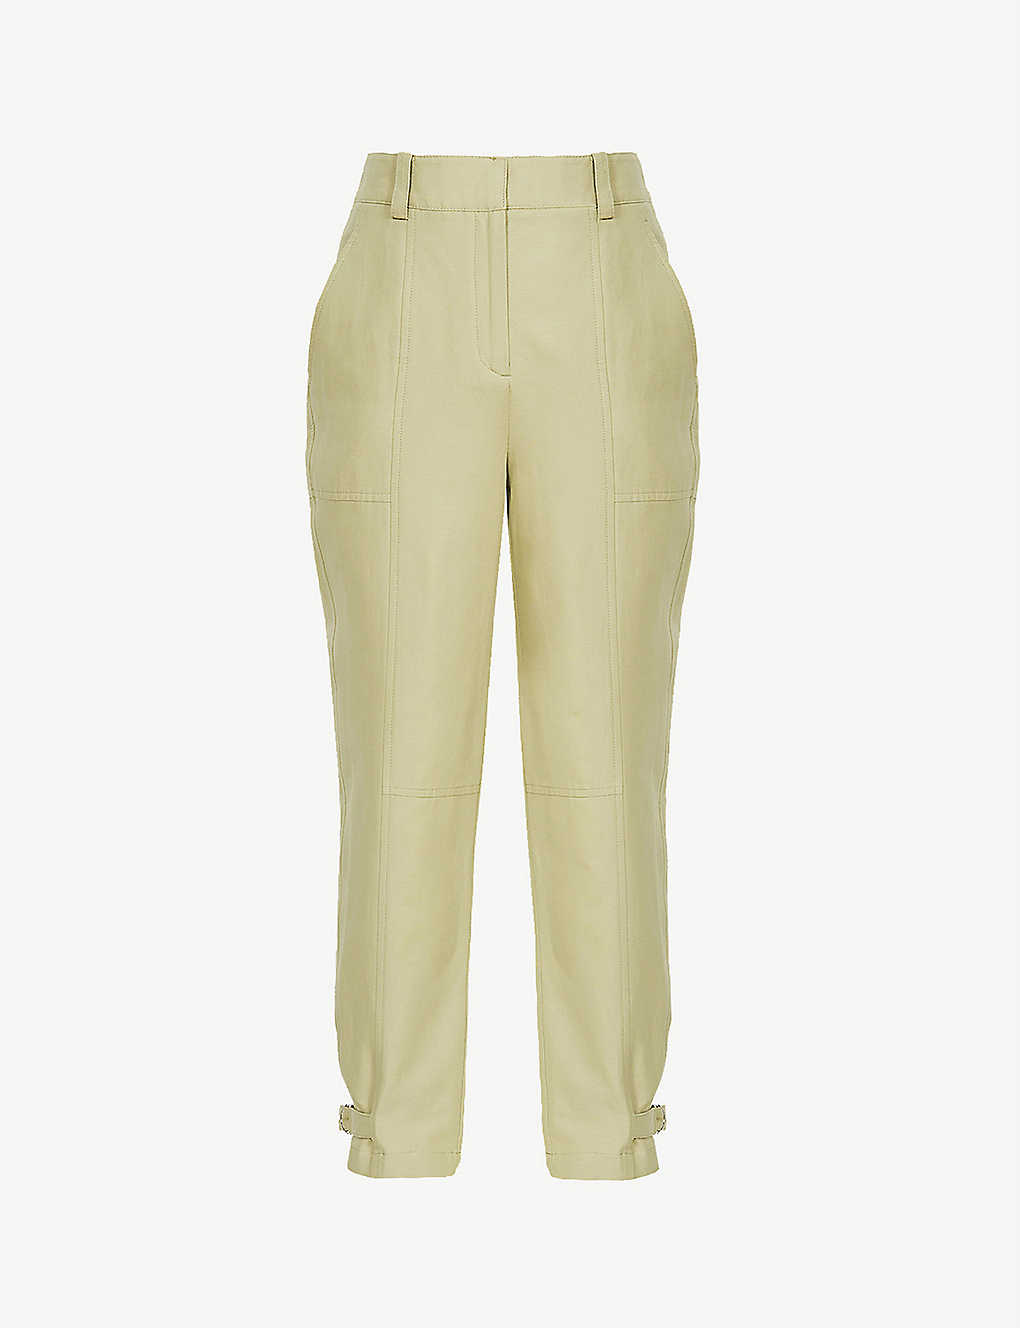 REISS: Eden tapered high-rise cotton and hemp-blend trousers